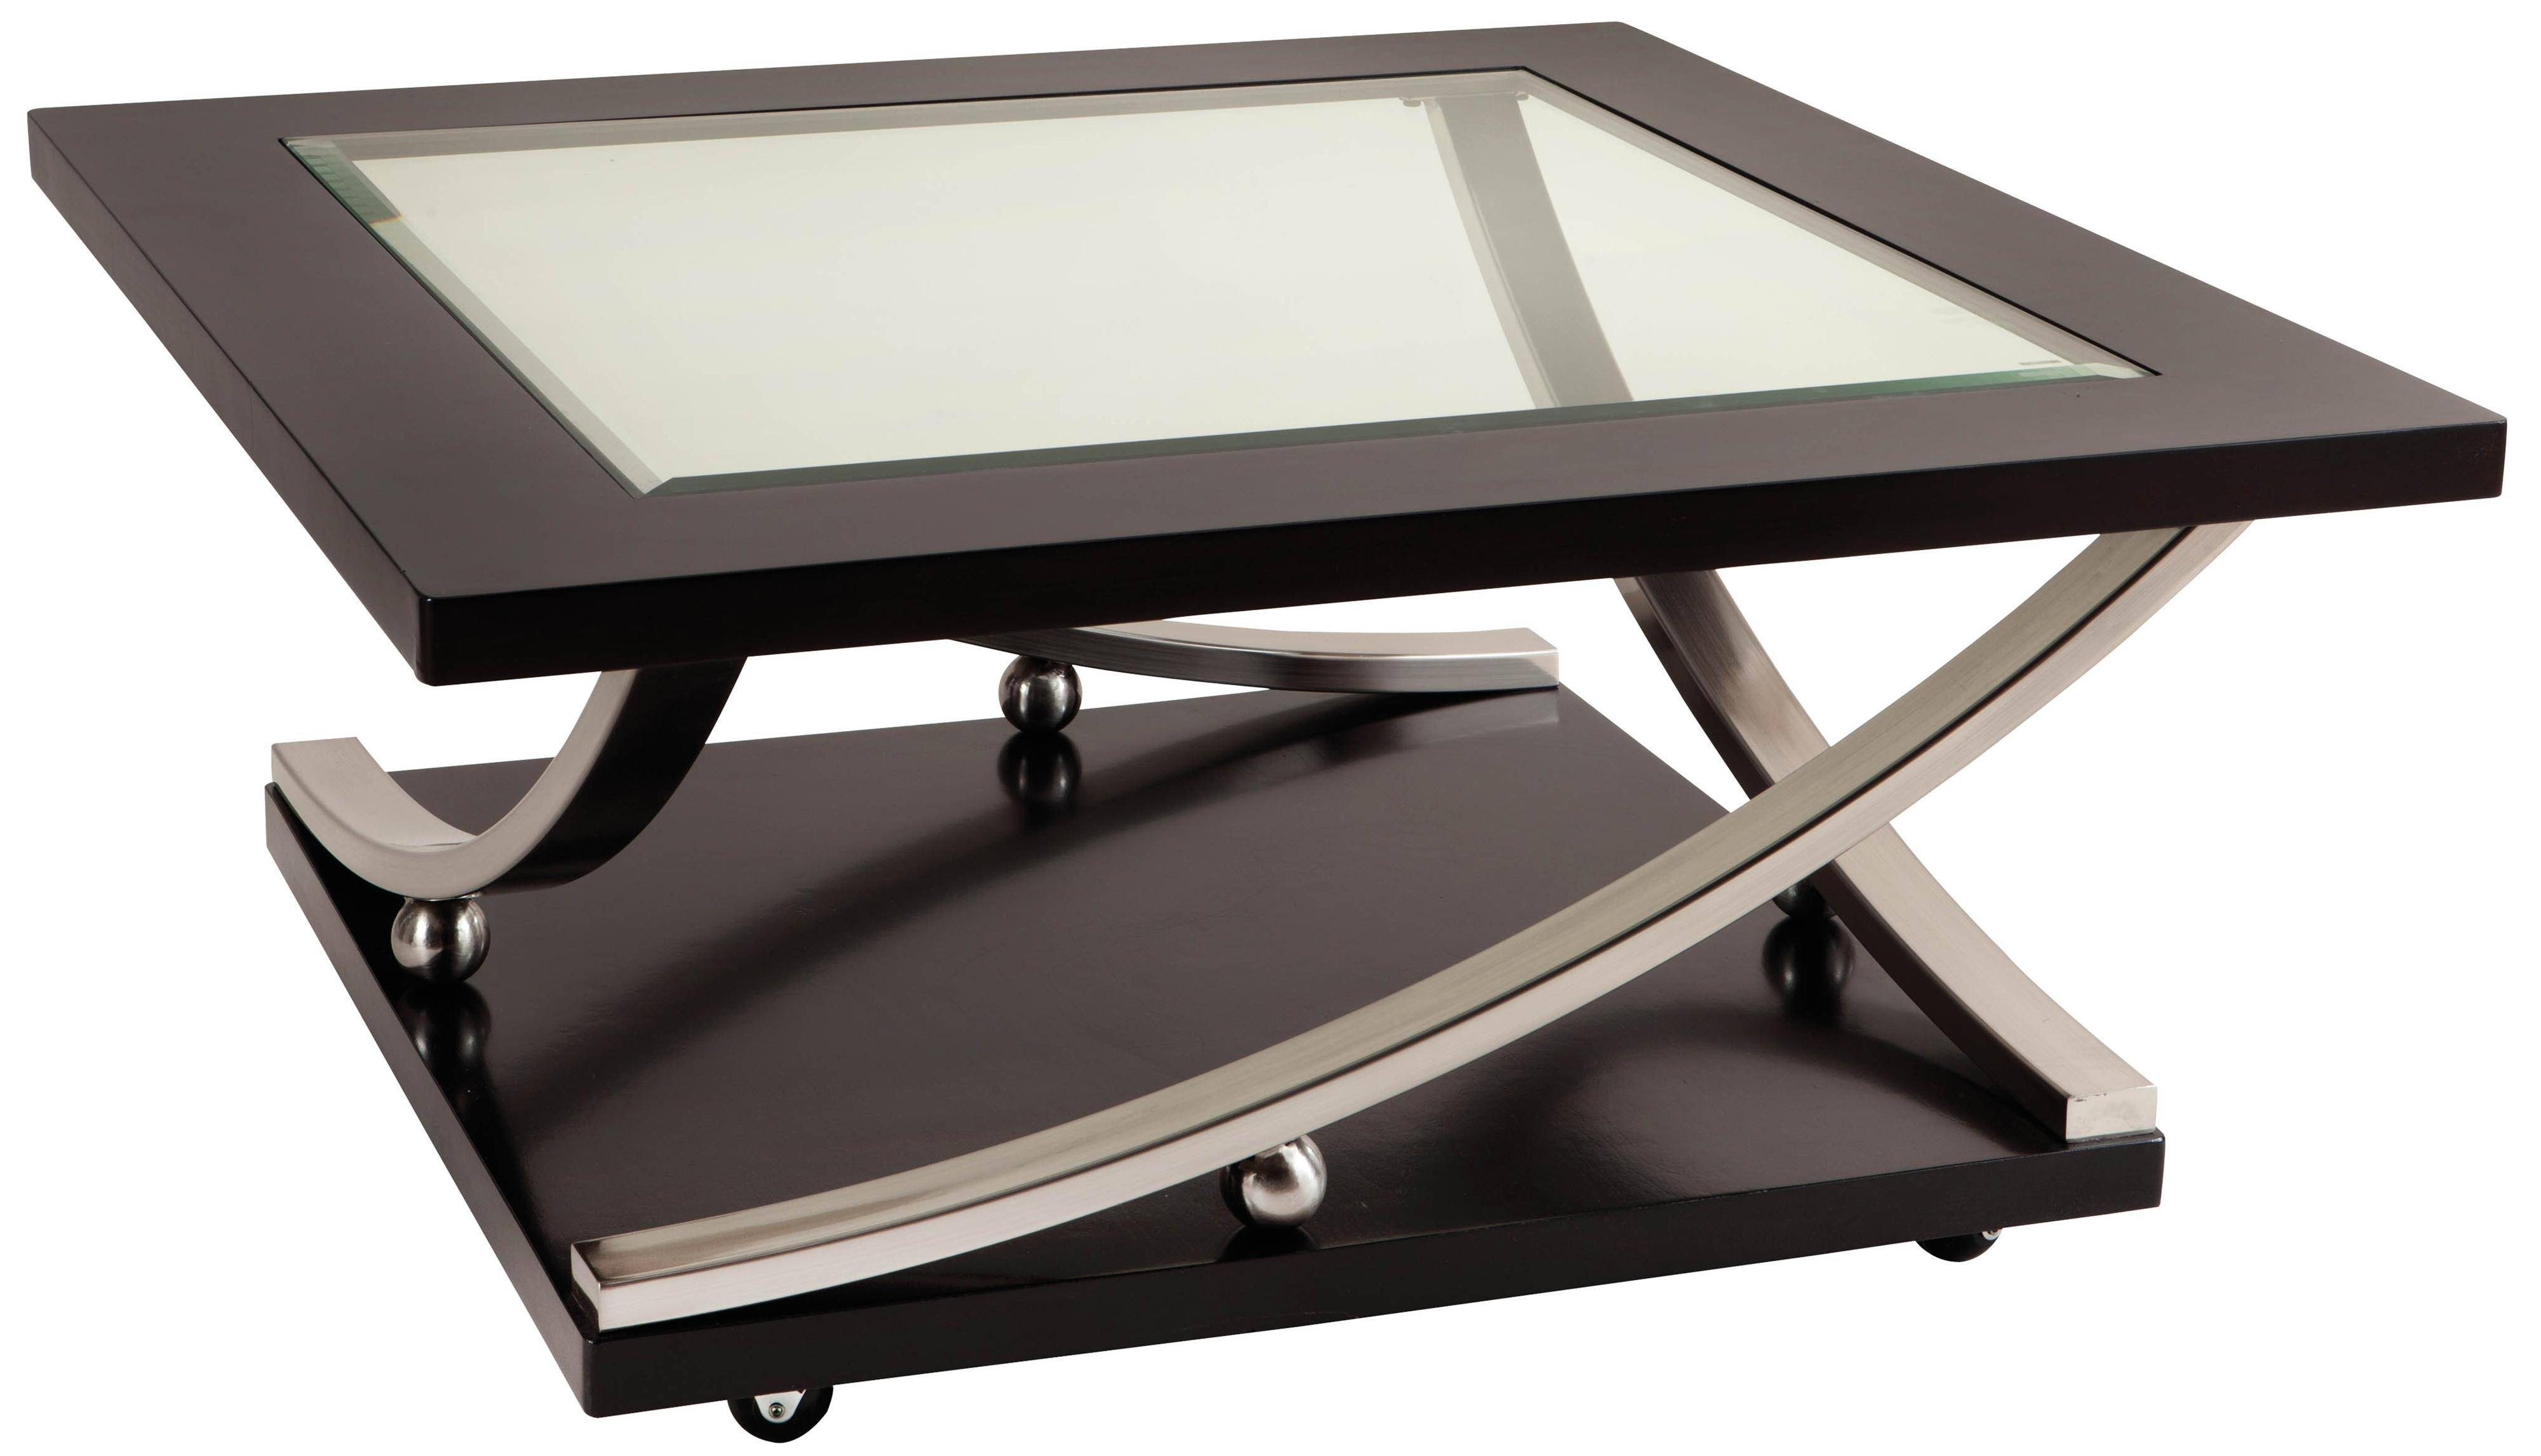 Square Glass Top Cocktail Table With Castersstandard Furniture regarding Glass Coffee Tables With Casters (Image 27 of 30)